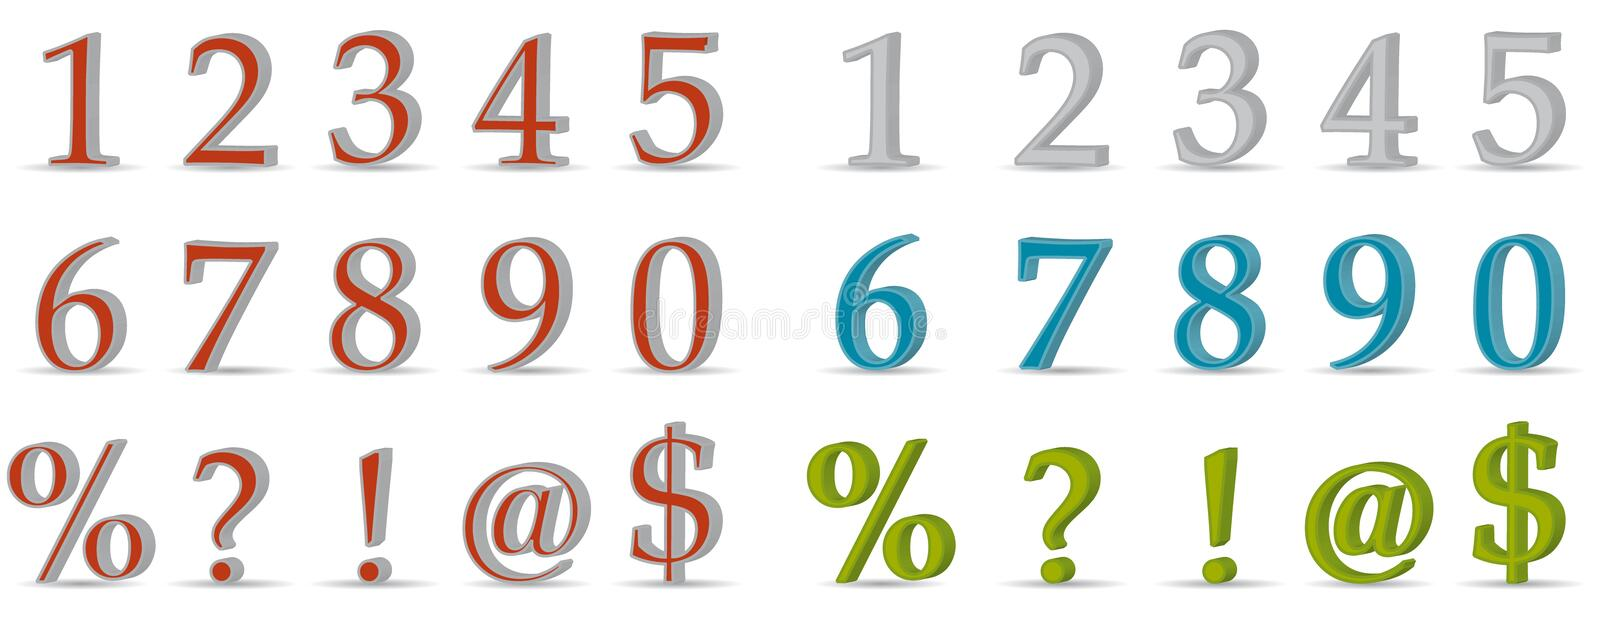 Download 3D numbers and symbols stock vector. Illustration of numeric - 18316996